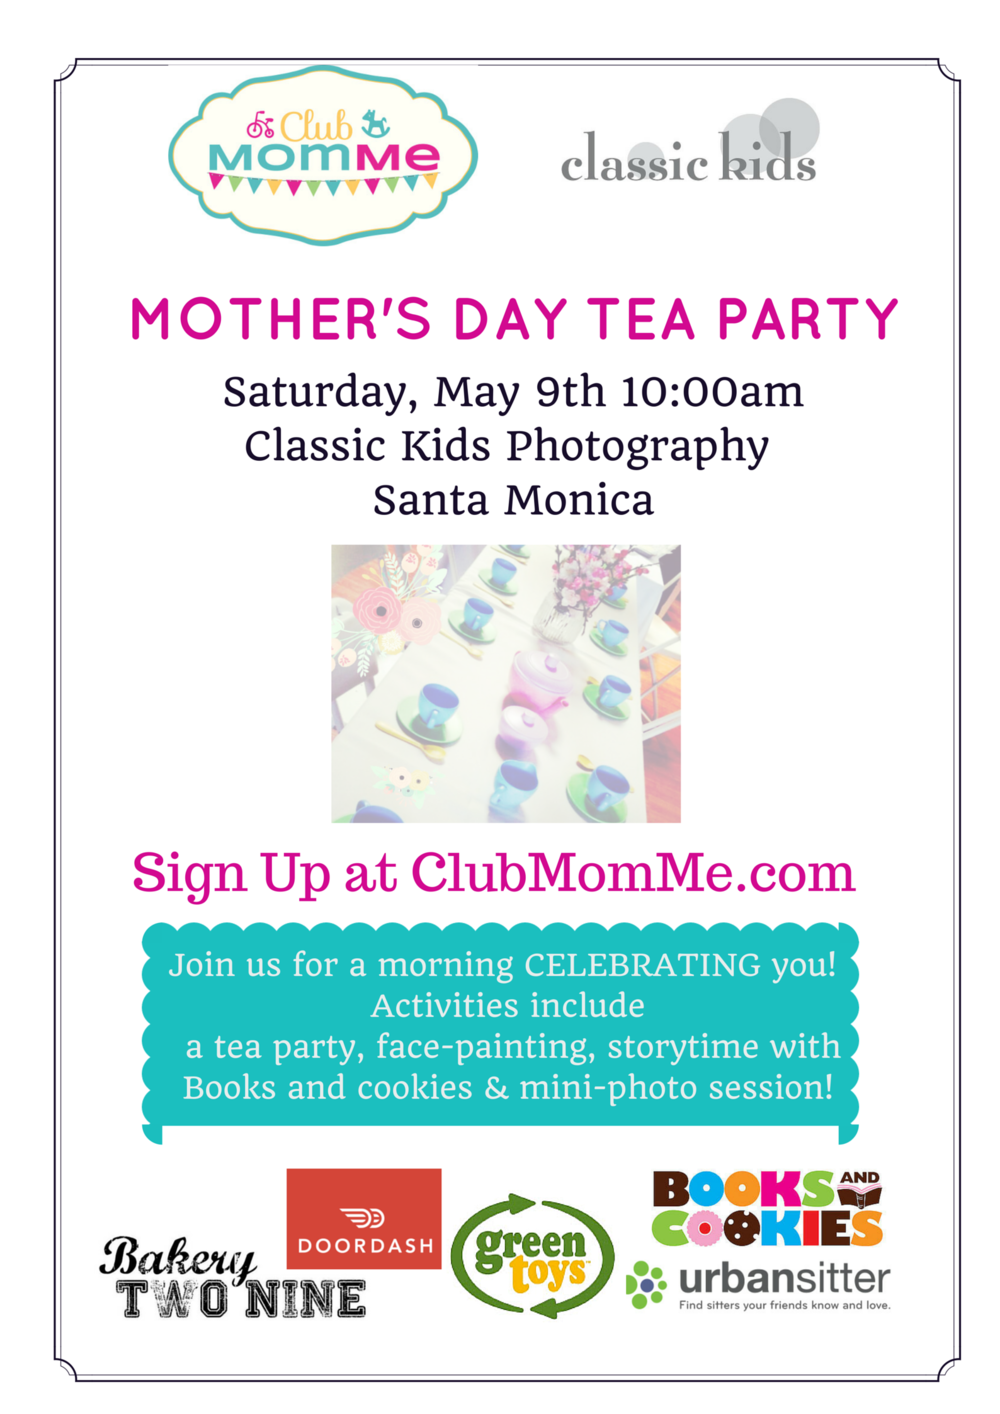 ClubMomMe Mothers Day Tea Party